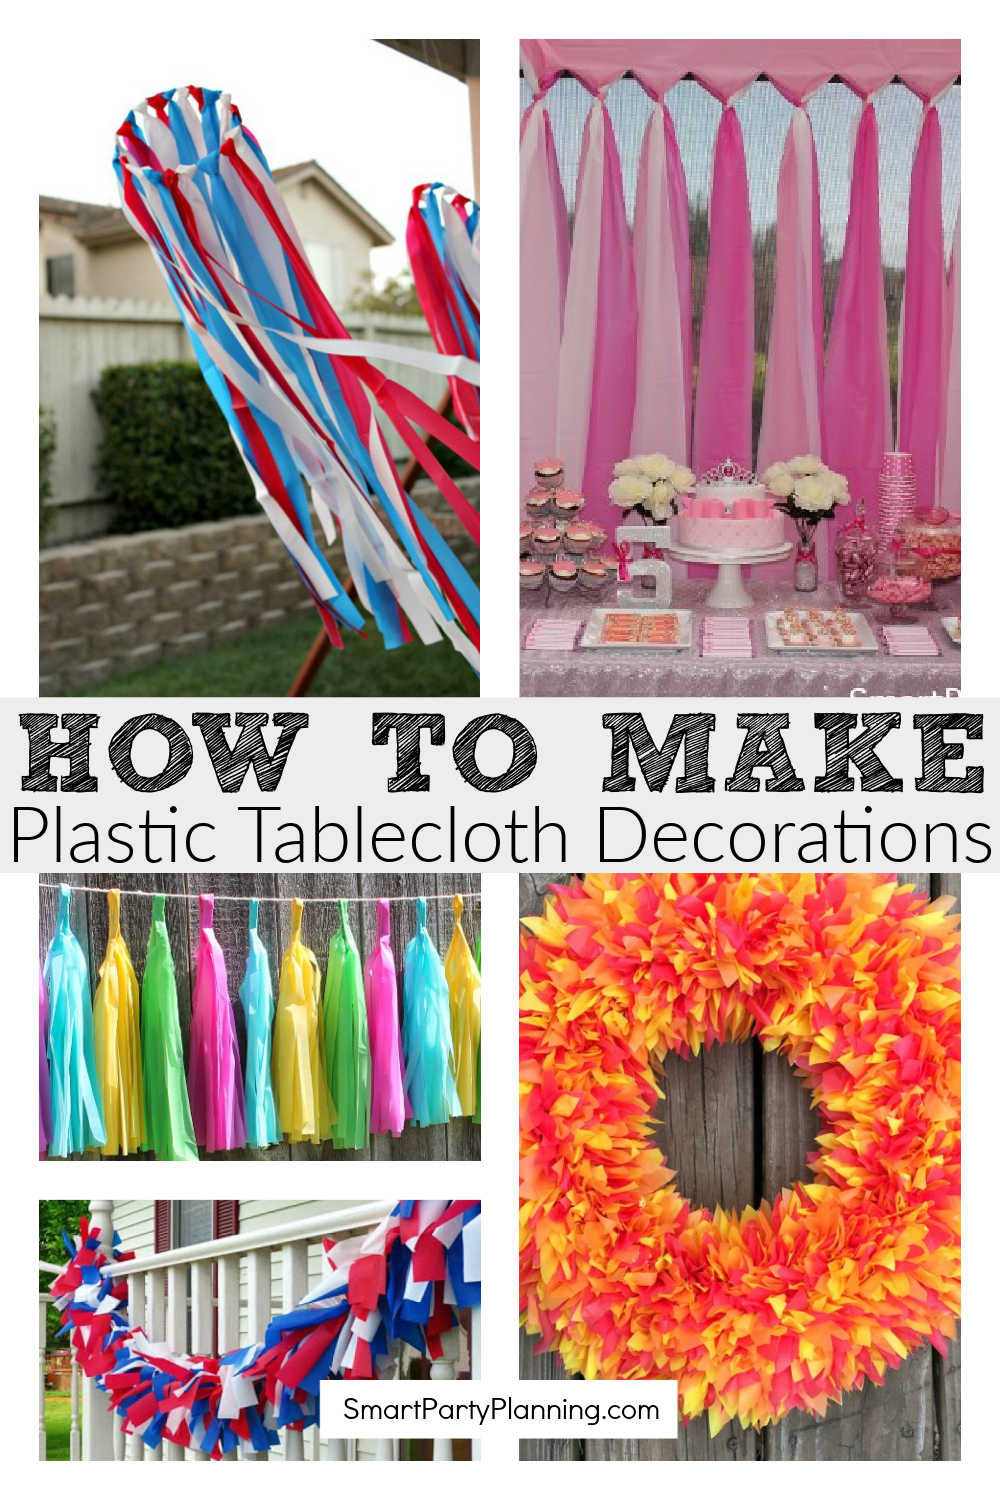 How to make plastic tablecloth decorations